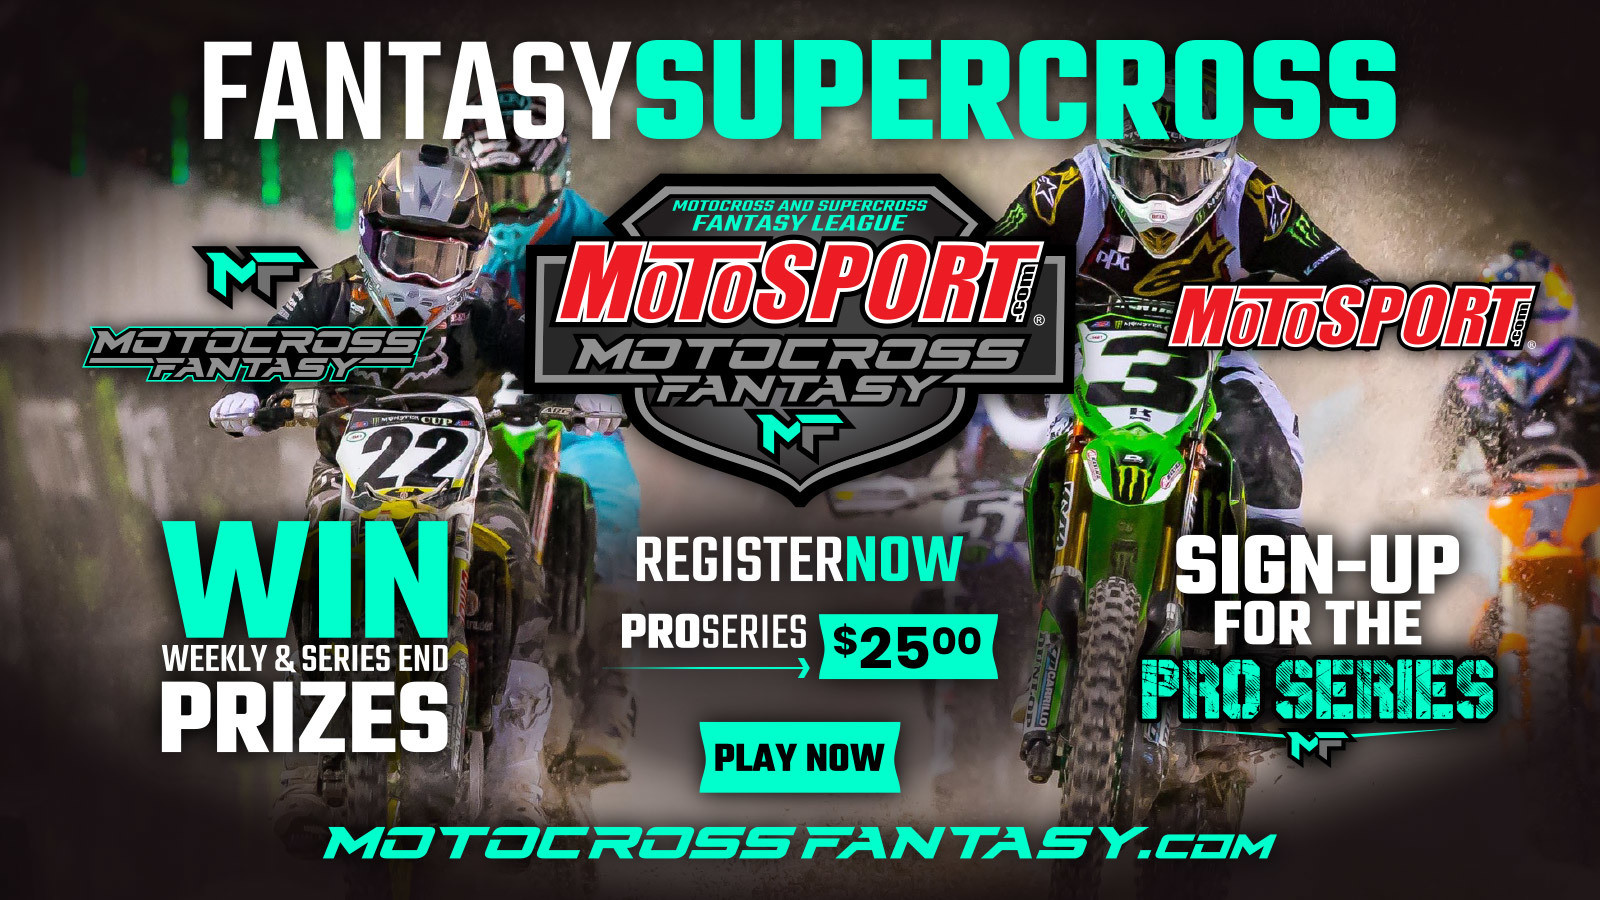 Win Prizes Throughout the 2019 Season by Playing Motocross Fantasy!